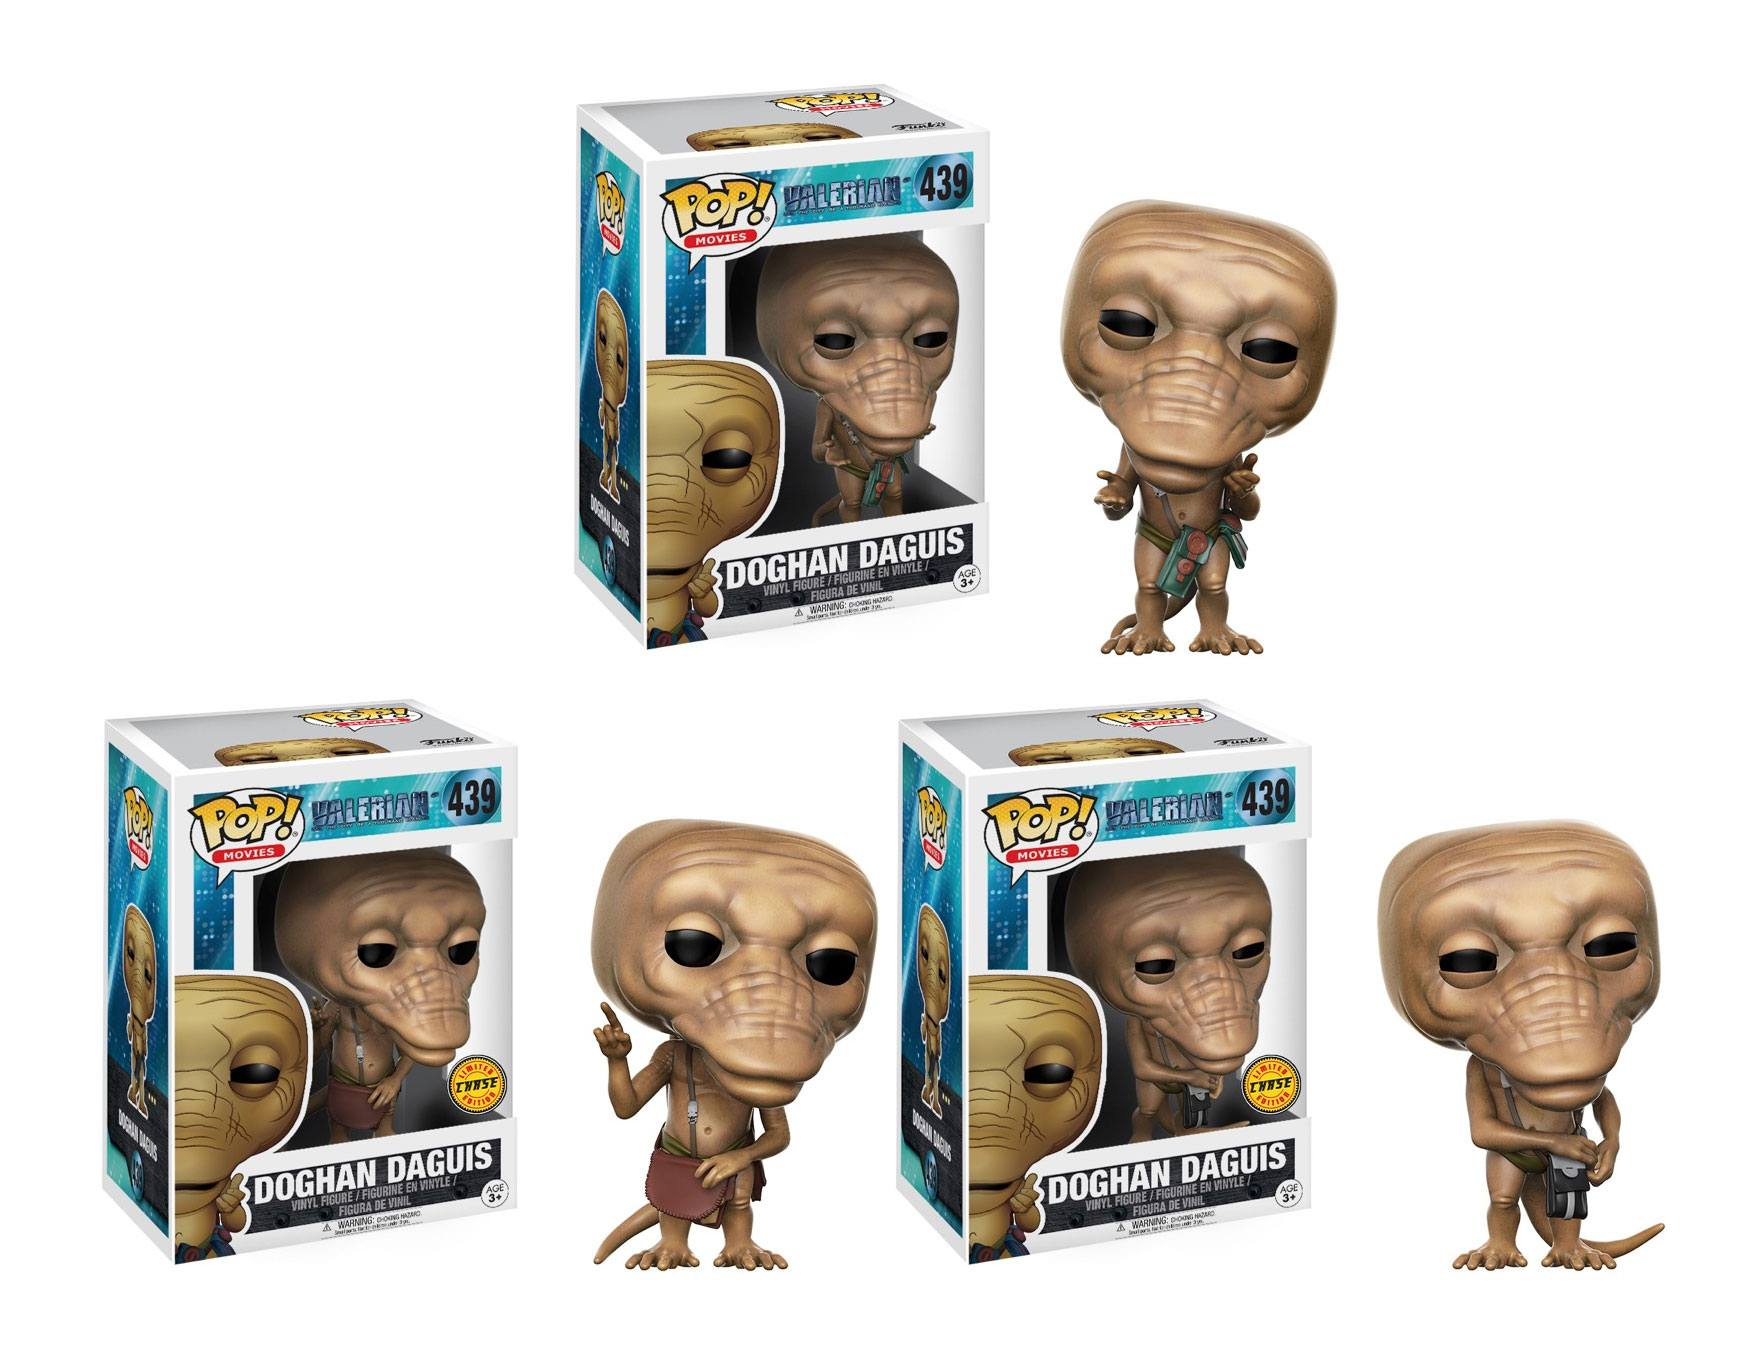 Valerian and the City of a Thousand Planets POP! Movies Figures 9 cm Doghan Daguis Assortment (6)